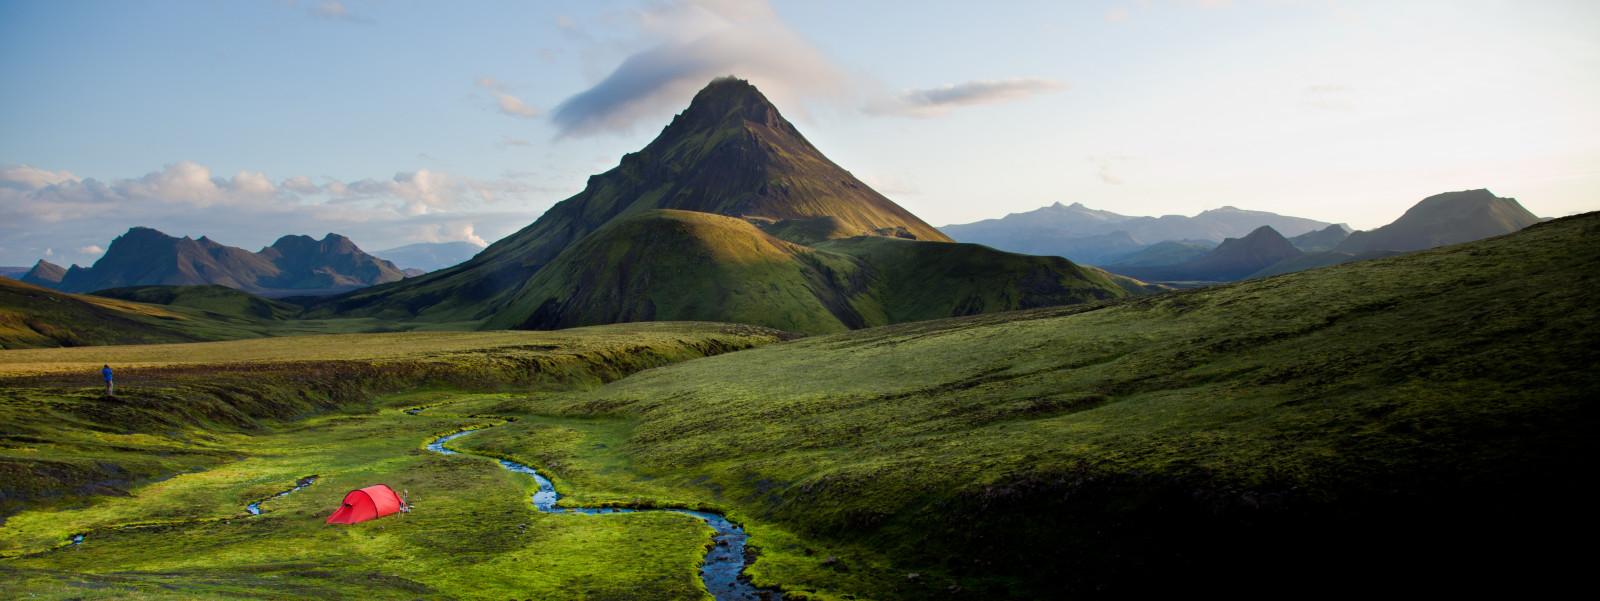 iceland tent camp